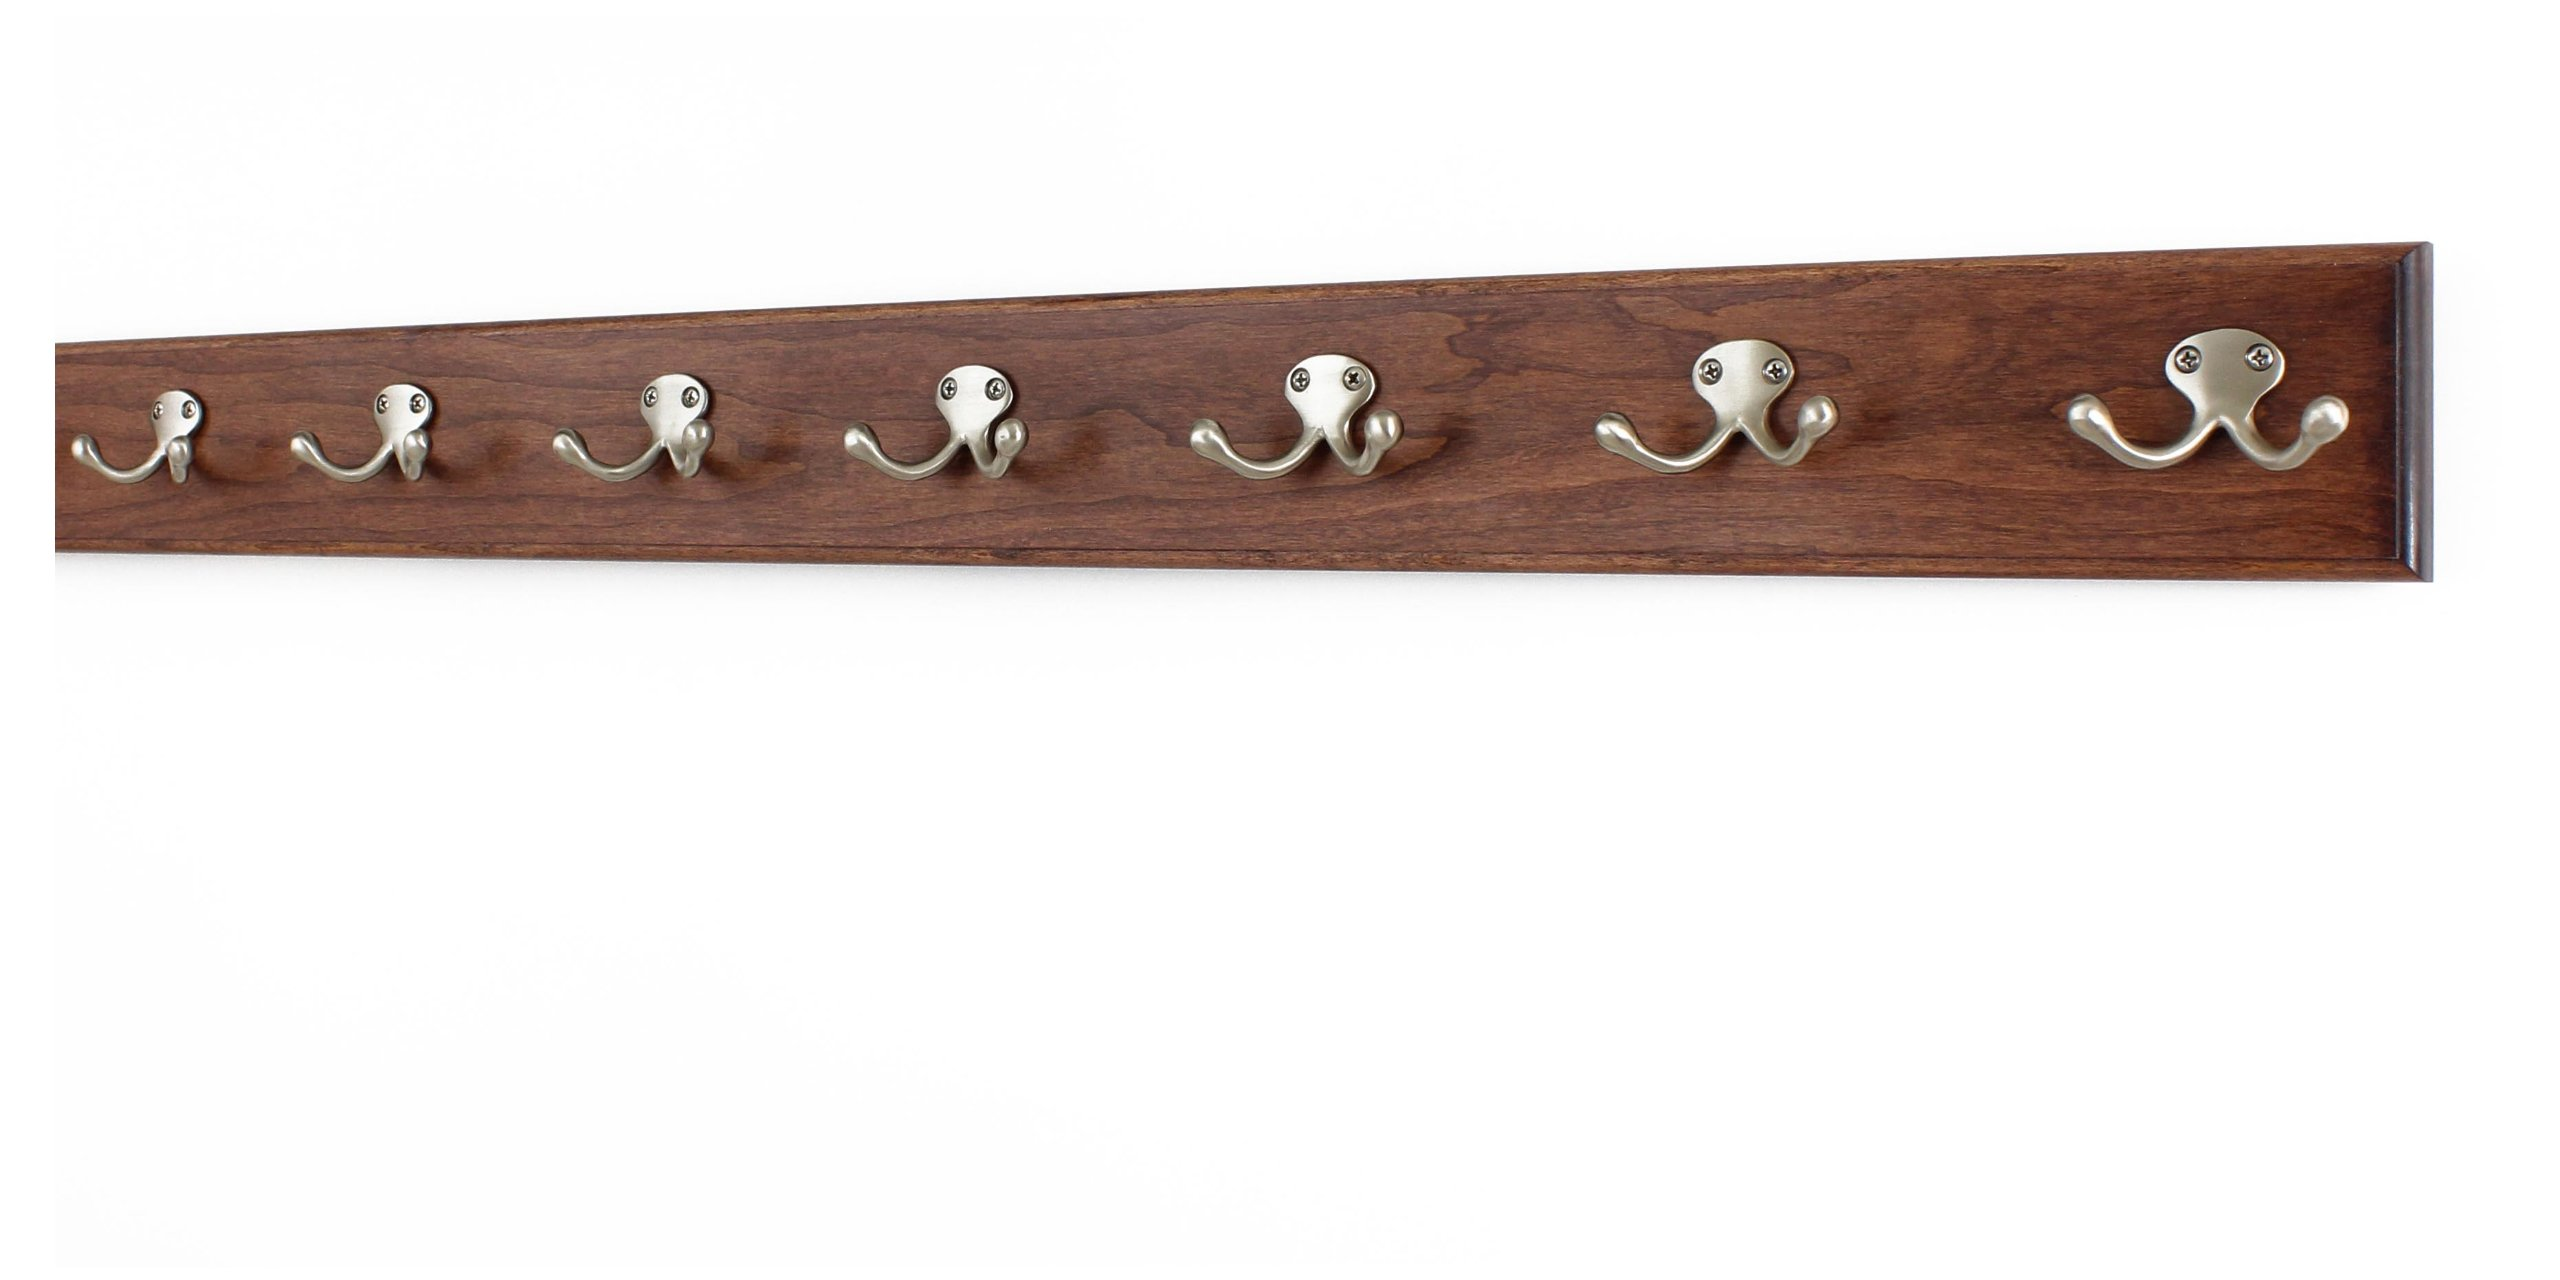 Solid Cherry Wall Mounted Coat Rack with Satin Nickel Double Style Coat Hooks - Made in the USA (Mahogany, 36'' x 3.5'' with 7 hooks)